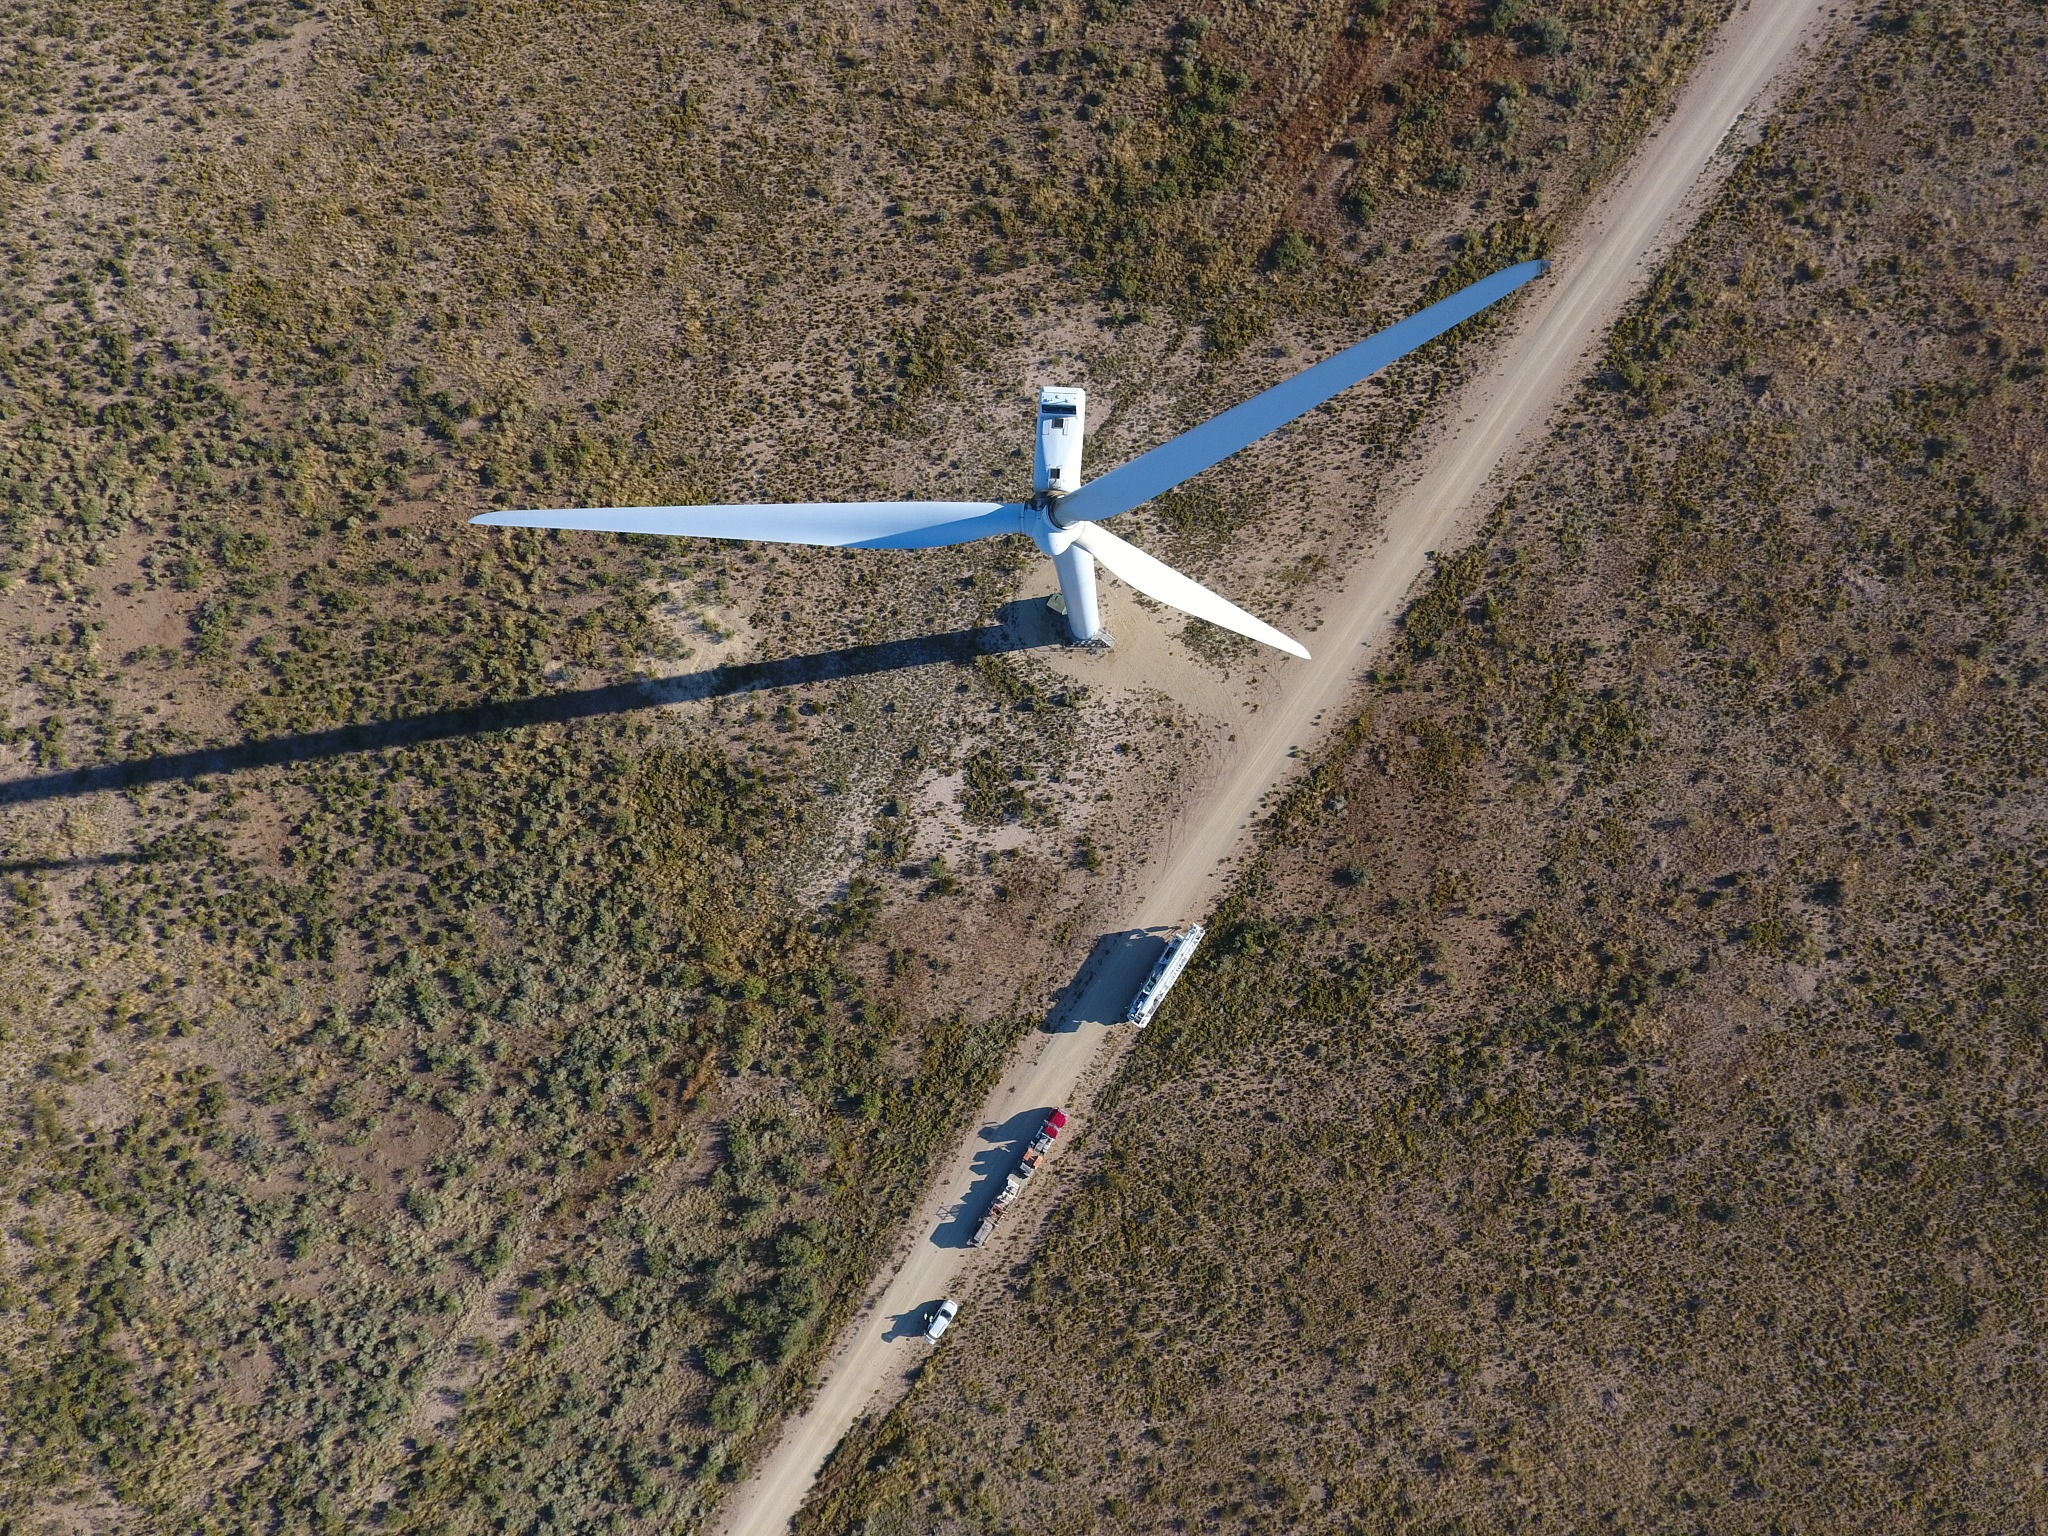 Looking Down at a Wind Turbine by Chris Martin